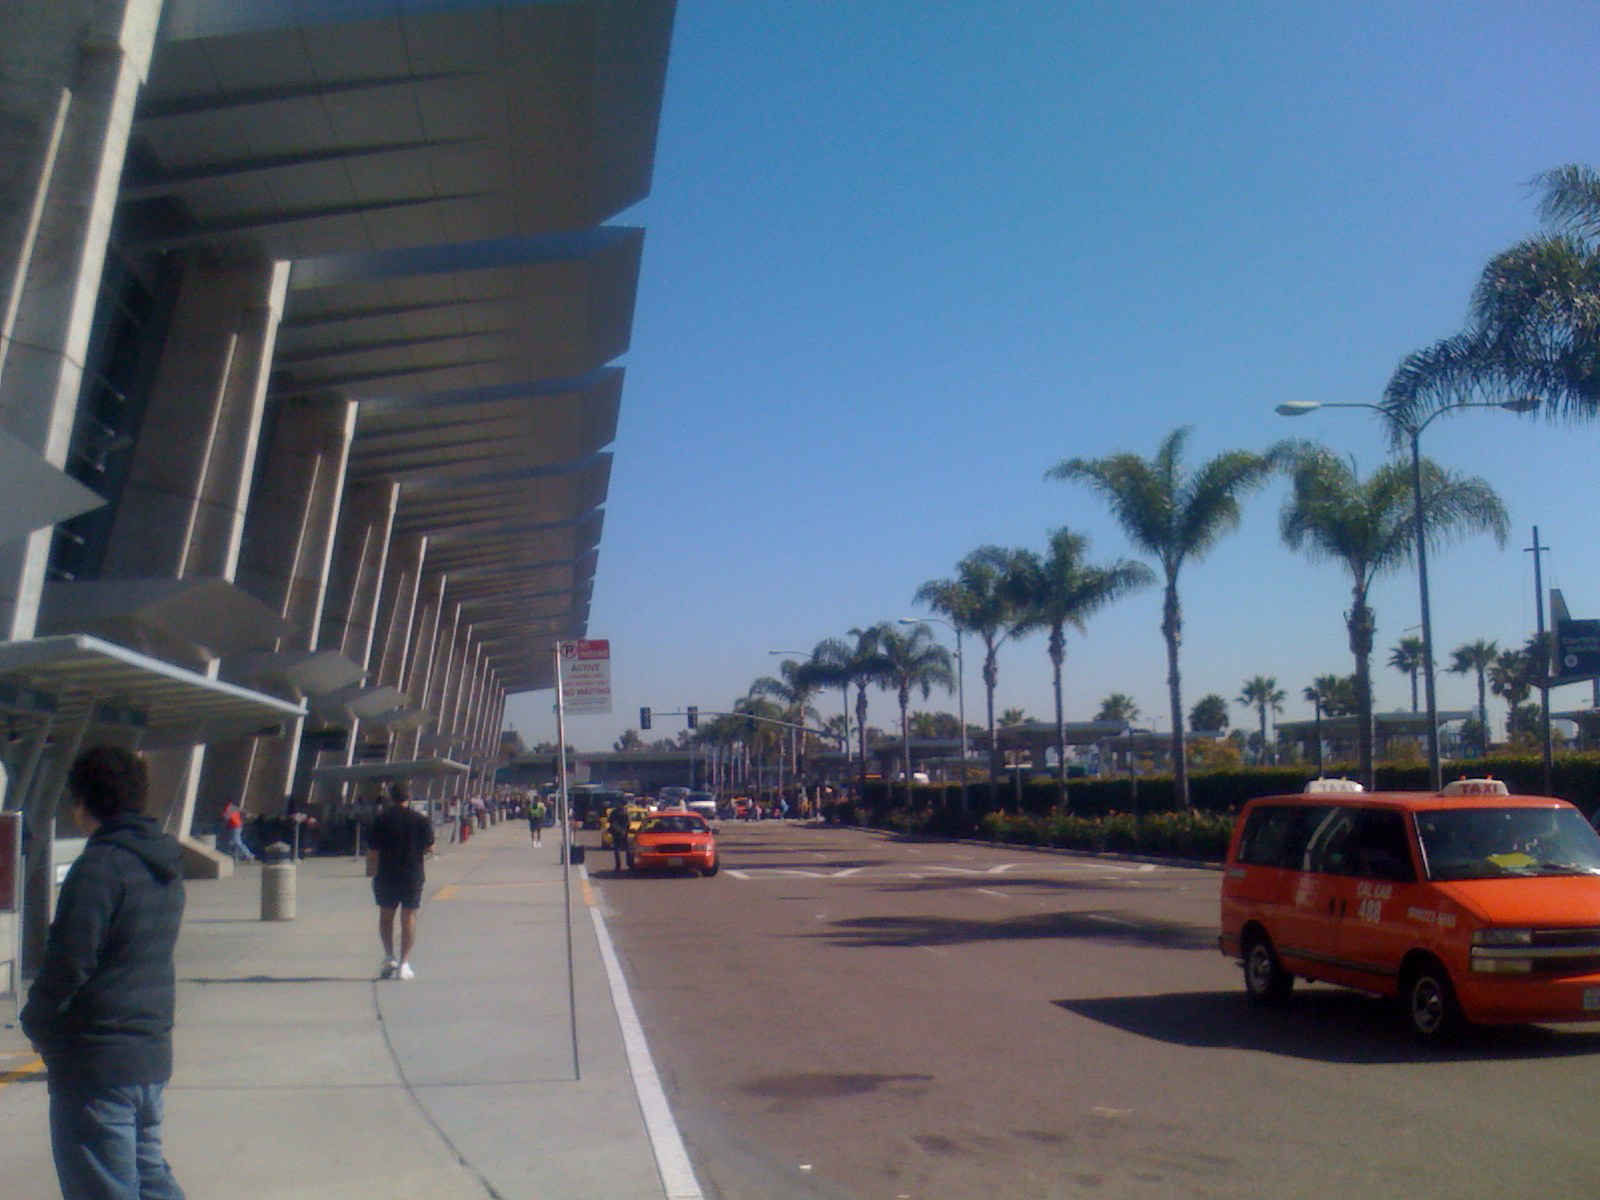 San Diego International Airport Code, California, USA - SAN